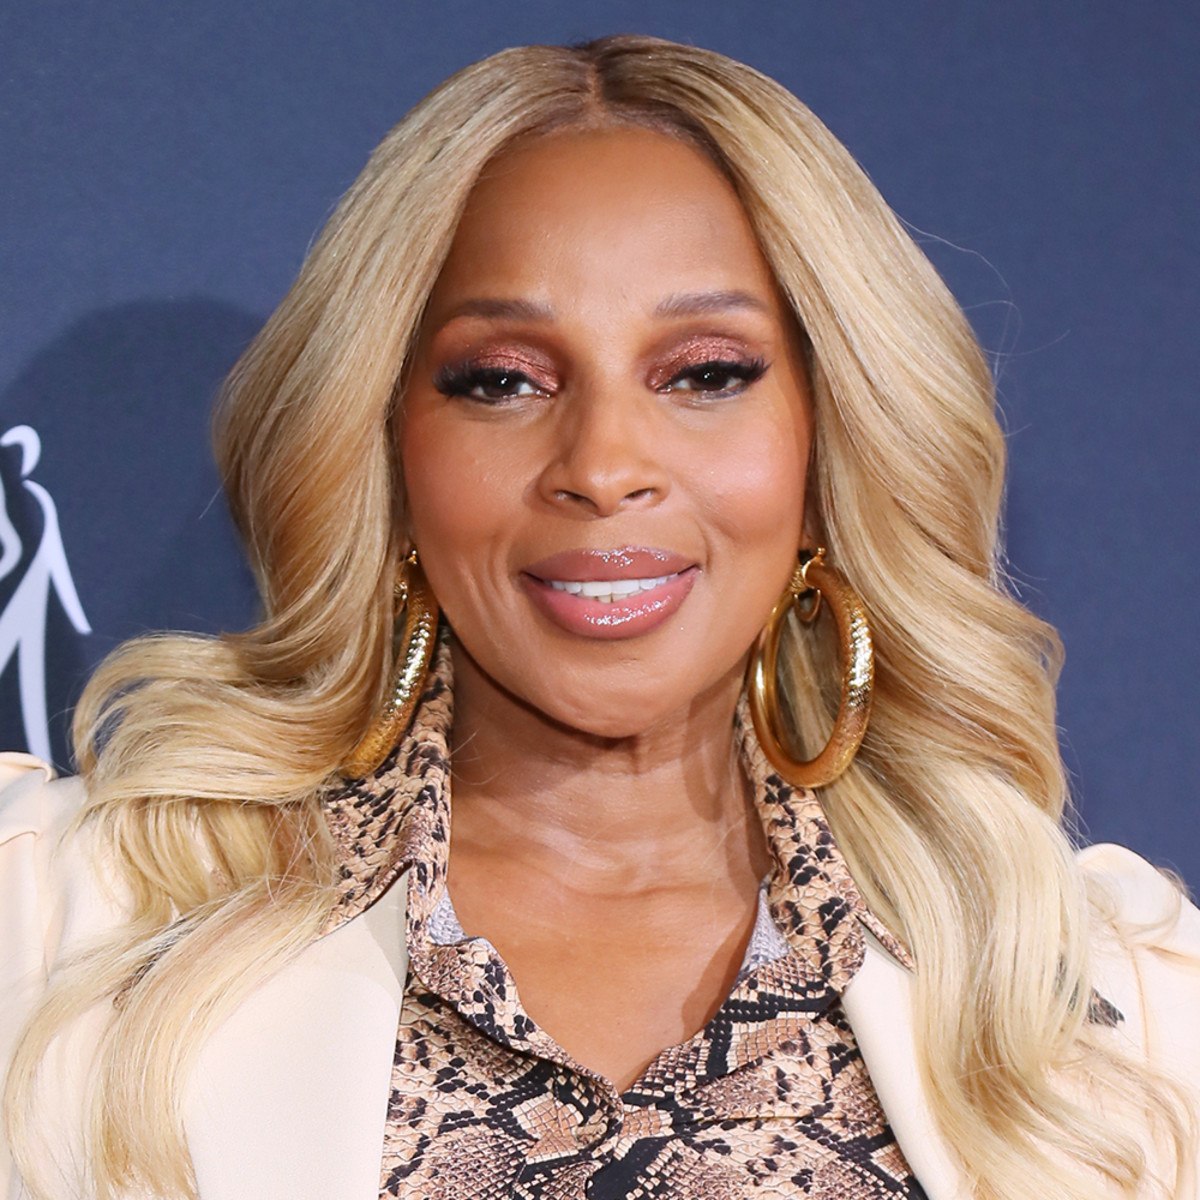 Singer Mary J. Blige, 50, poses nude in new sultry photos